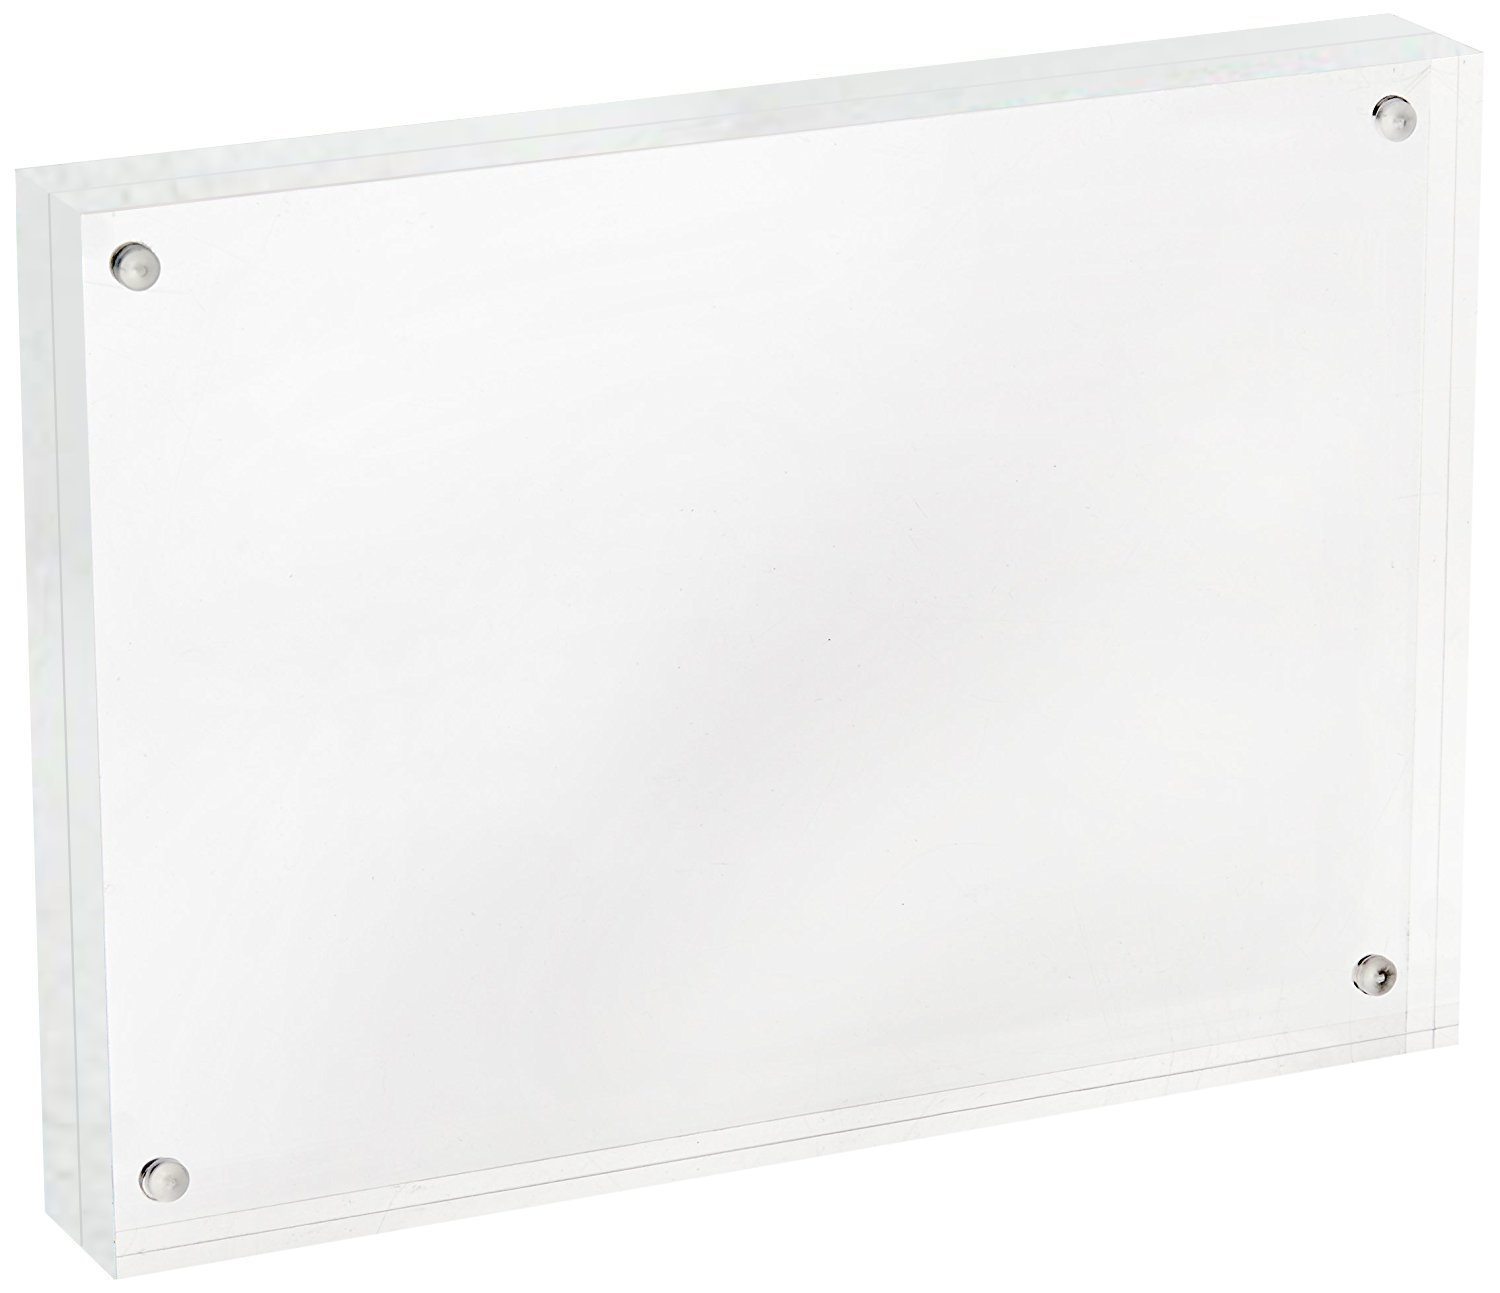 Cq acrylic 8'' x 10'' Acrylic Magnetic Picture Frame, Clear, 10 + 10MM Thickness Stand In Desk / Table,Pack of 1